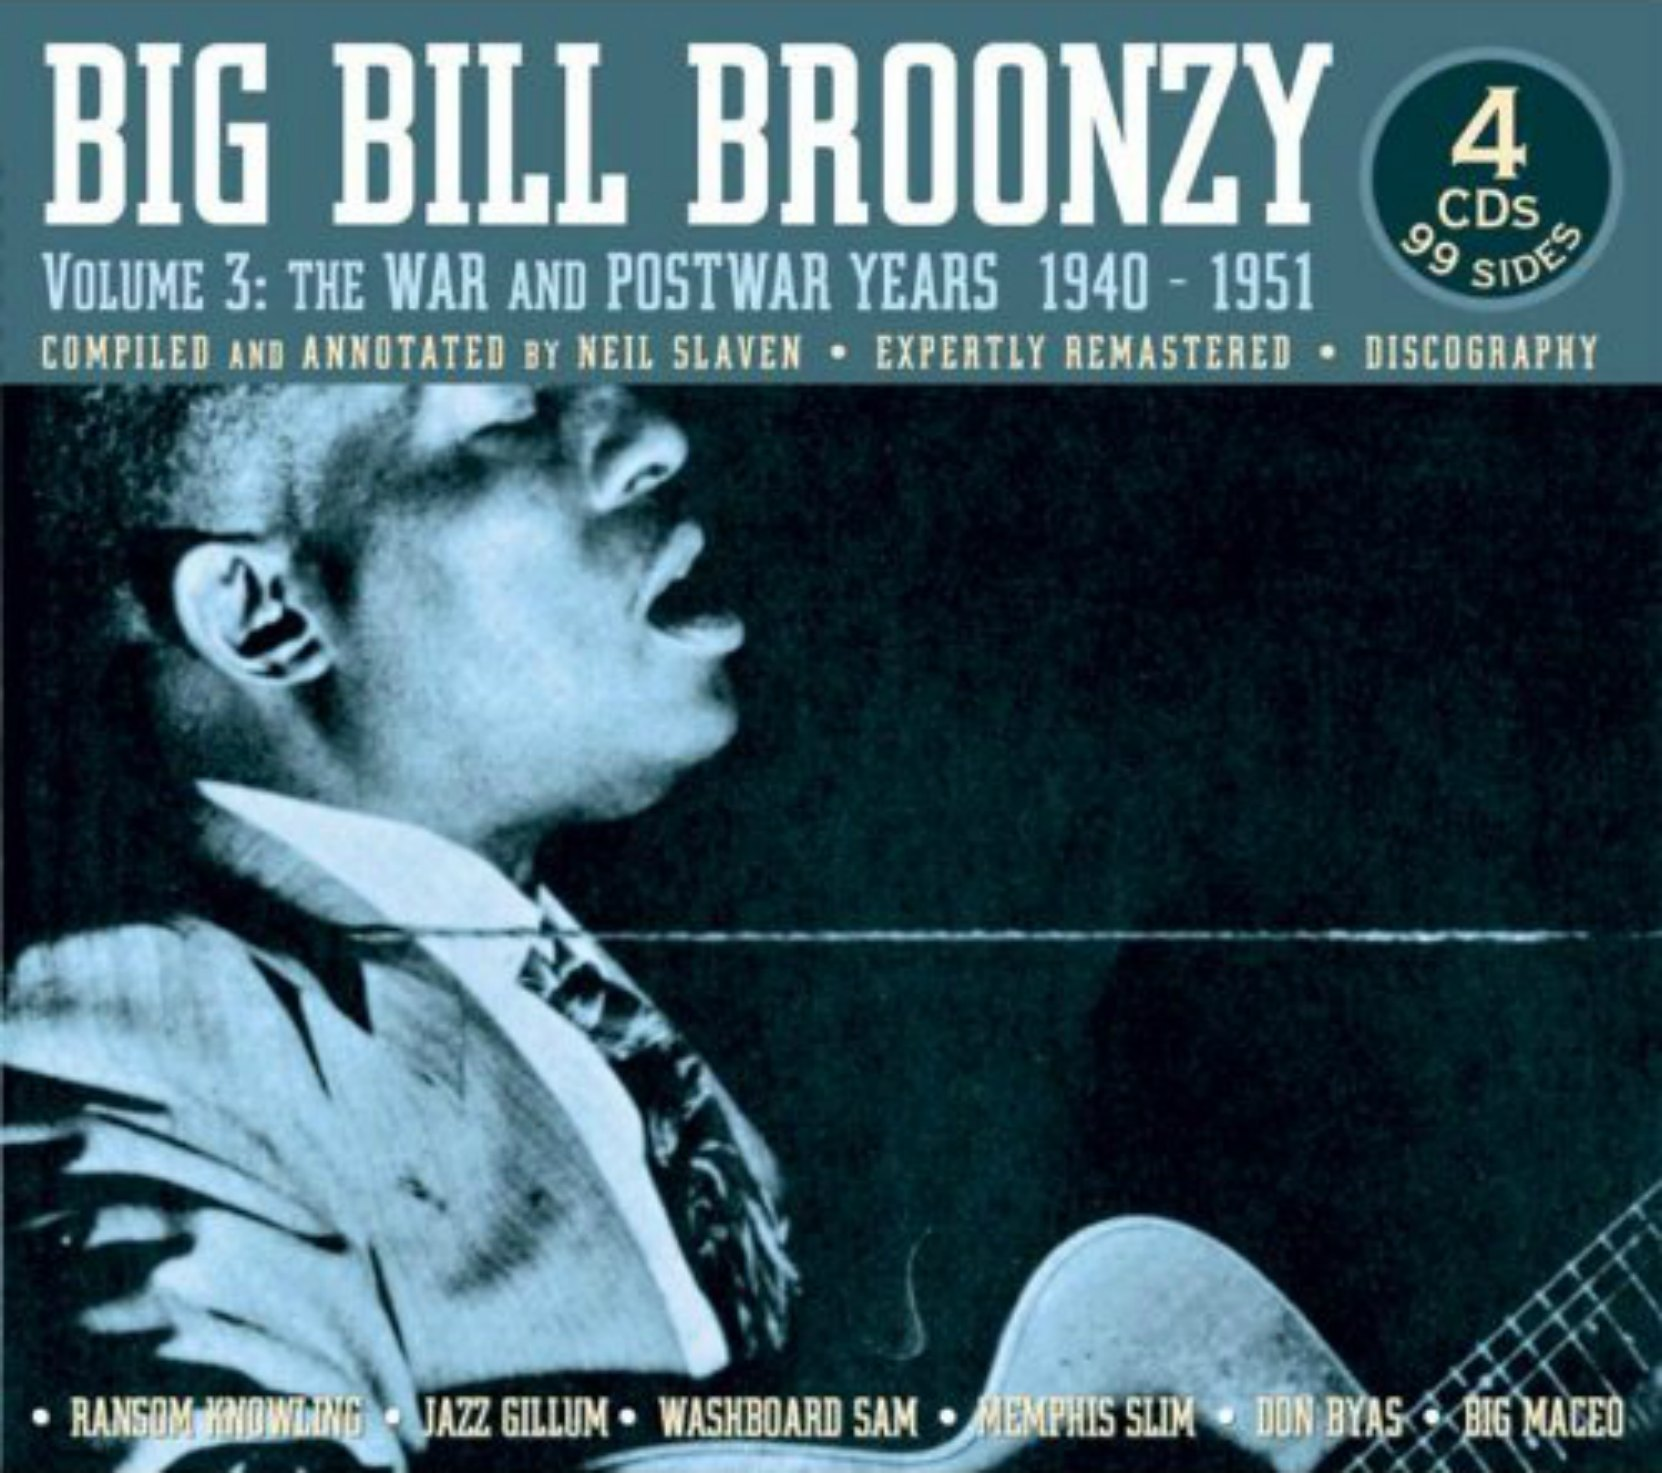 CD cover. Big Bill Broonzy, Volume 3: The War and Postwar years 1940-51, on JSP Records